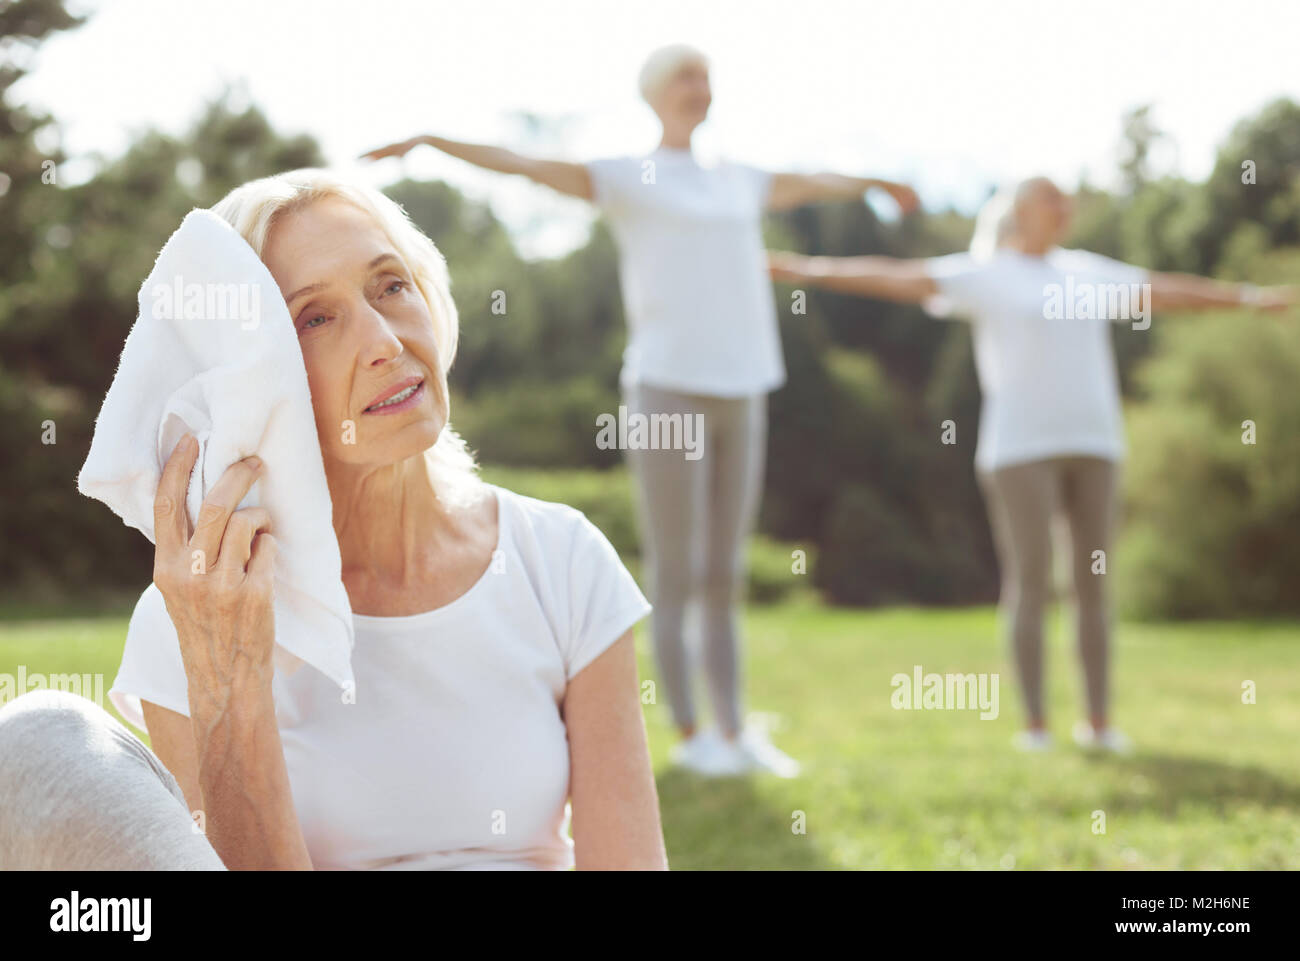 Pleasant tired woman holding a towel - Stock Image